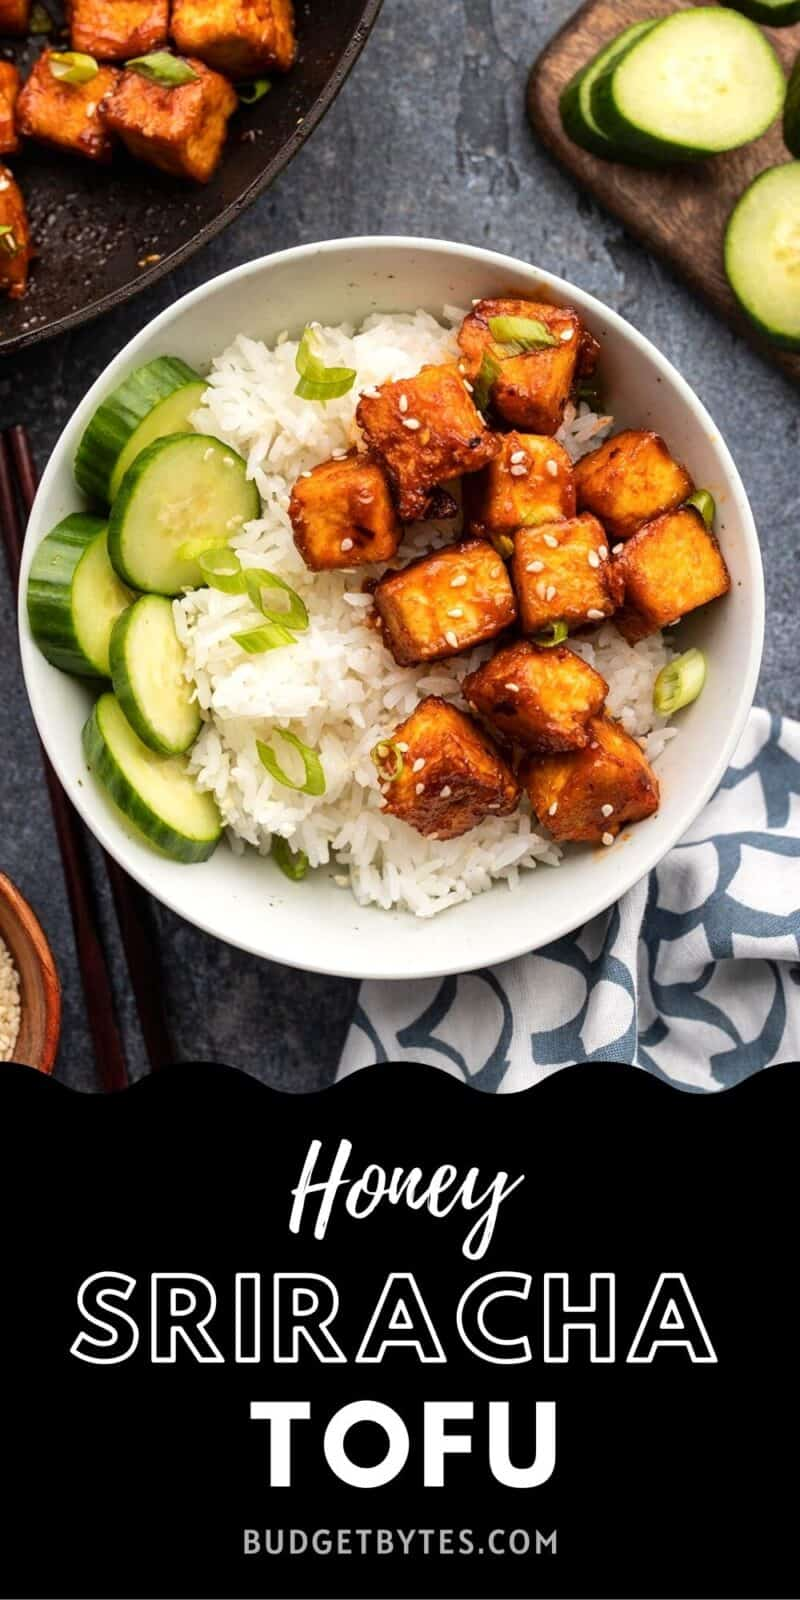 honey sriracha tofu in a bowl with rice and cucumber, title text at the bottom